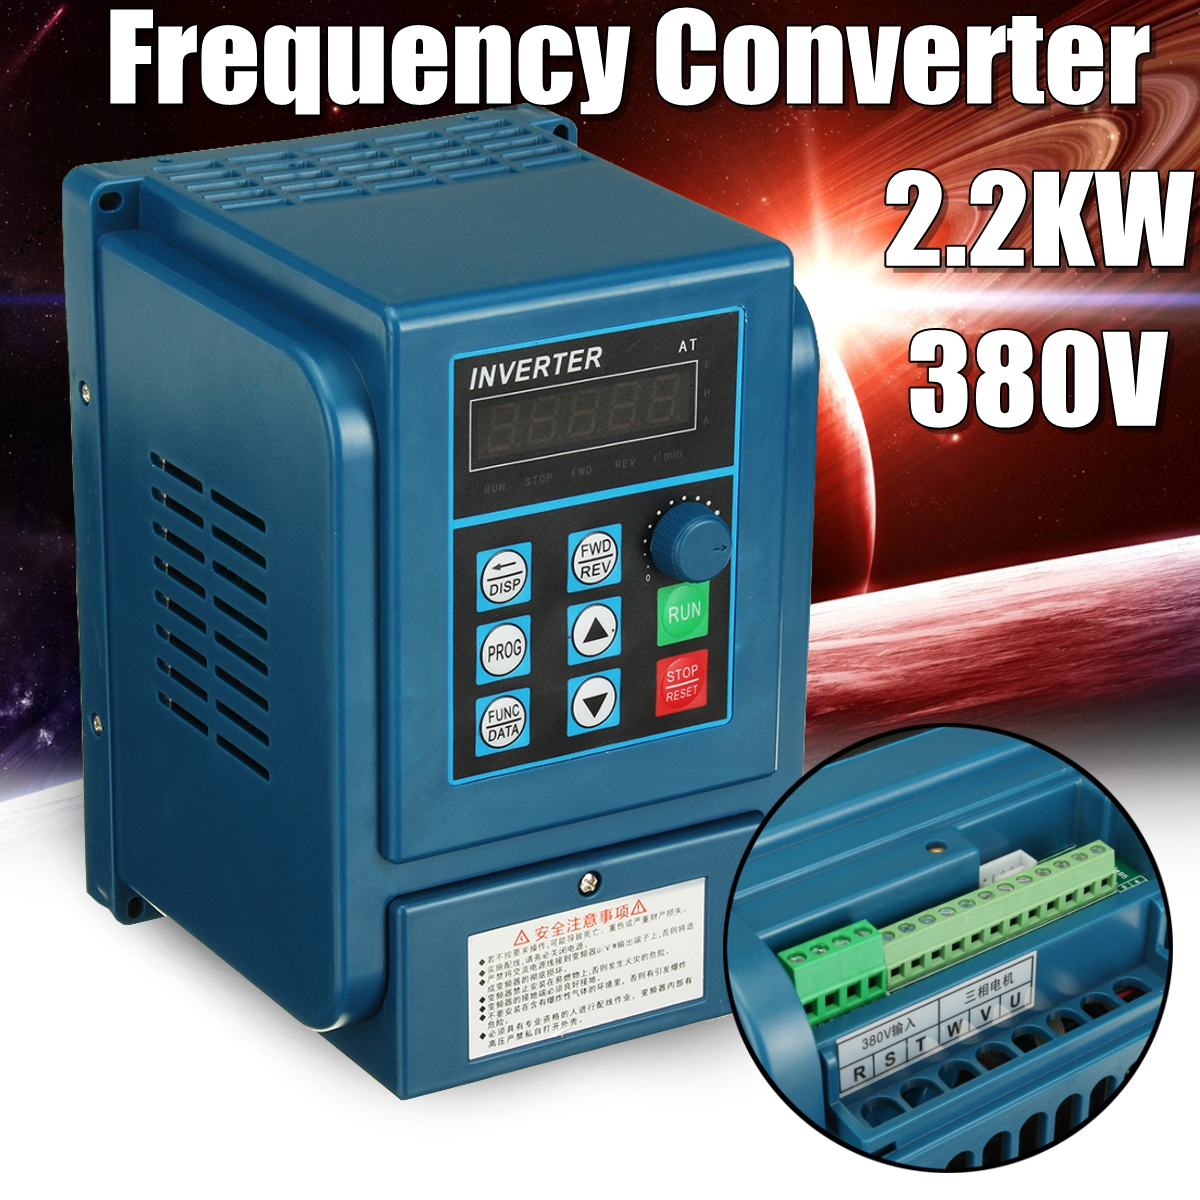 c033c7438 AT3-2200X 2.2KW 6A 380V 3PH In 3PH Out Variable Frequency Converter  Inverter V/F Vector Control. 6828.31 руб.